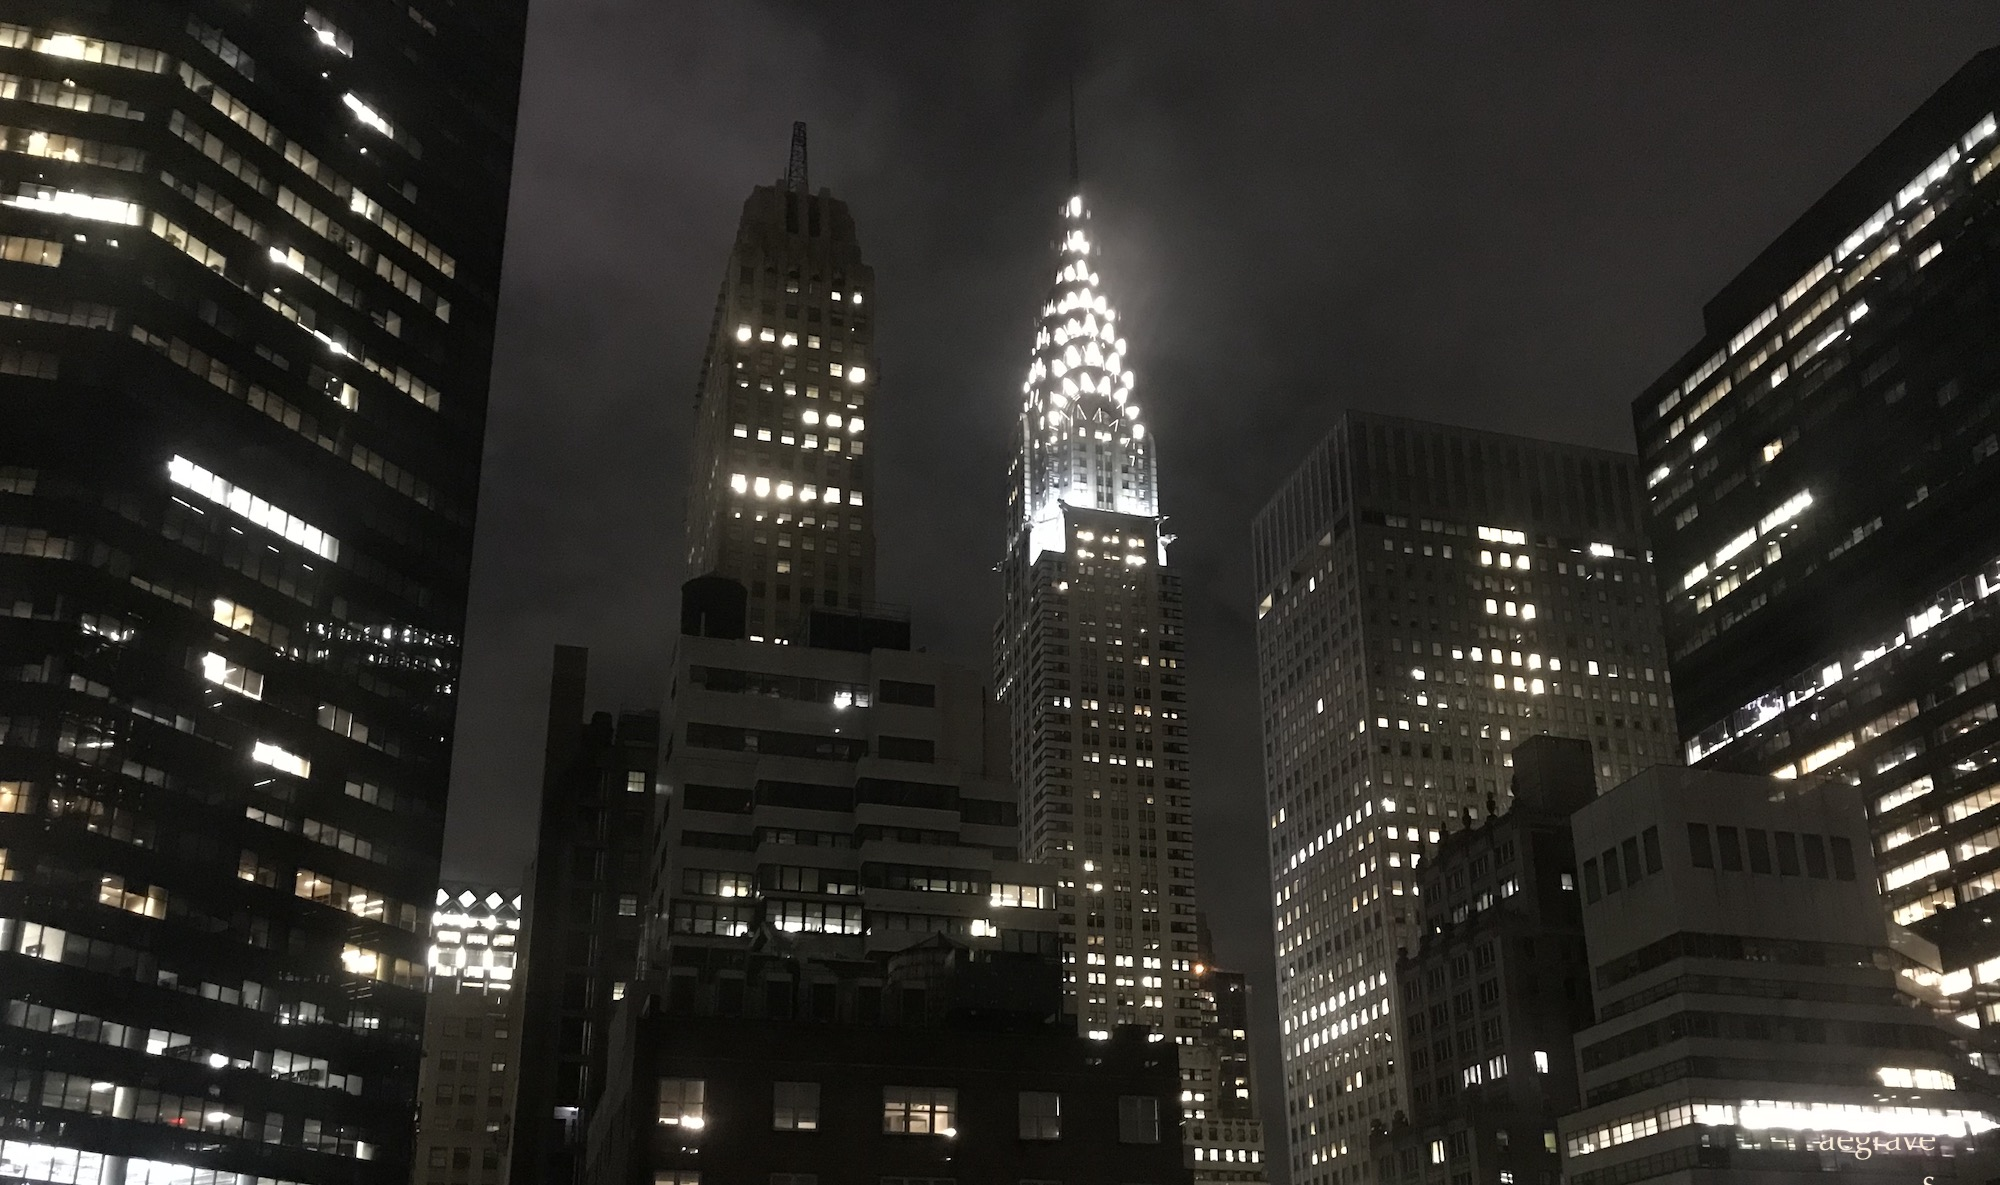 photo of the NYC skyline at night by A.E. Graves